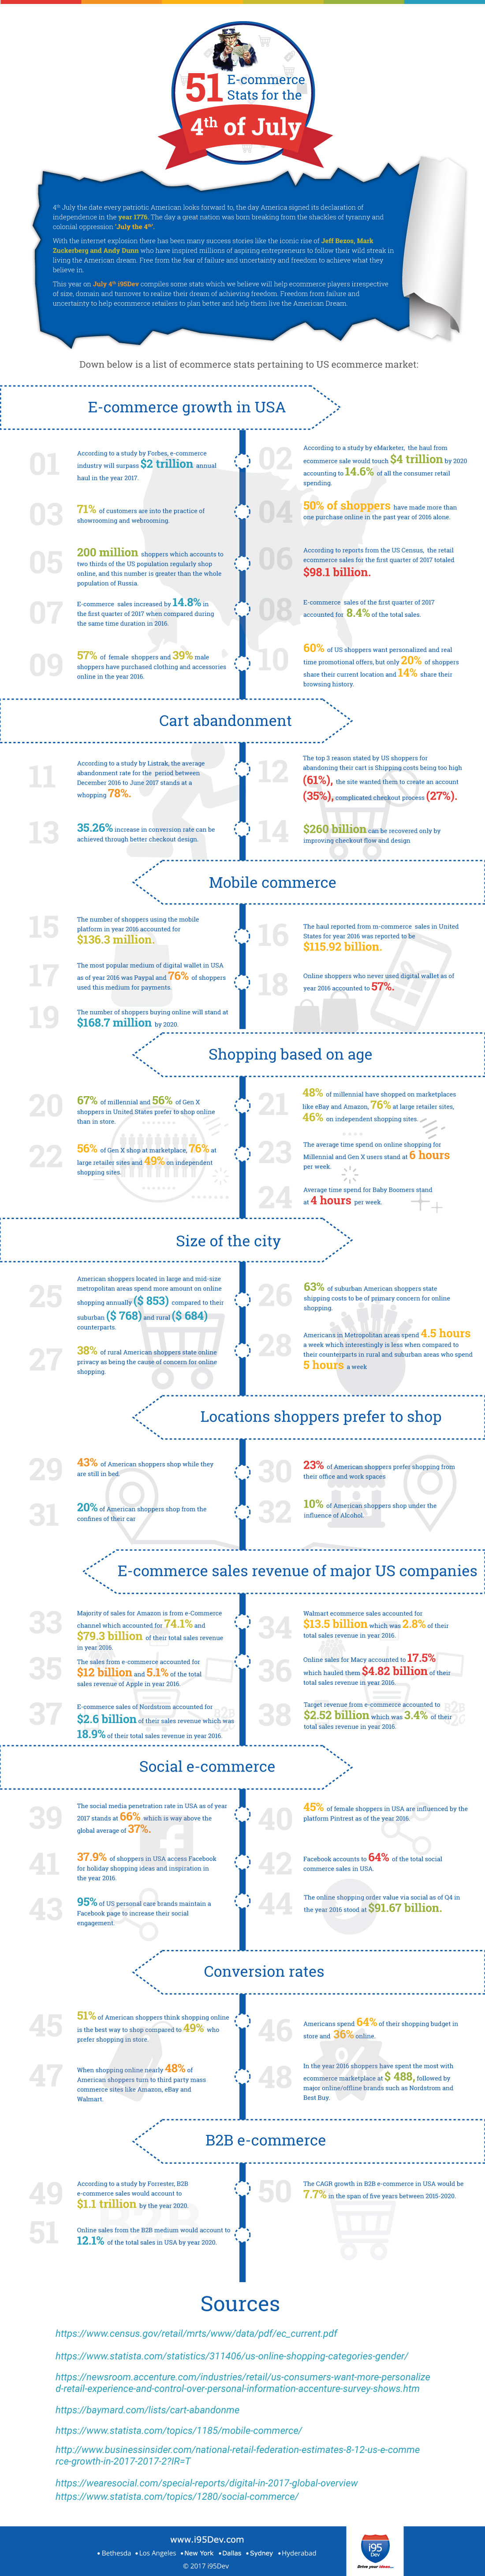 51-Ecommerce-Stats-for-the-4th-of-July-Infographic